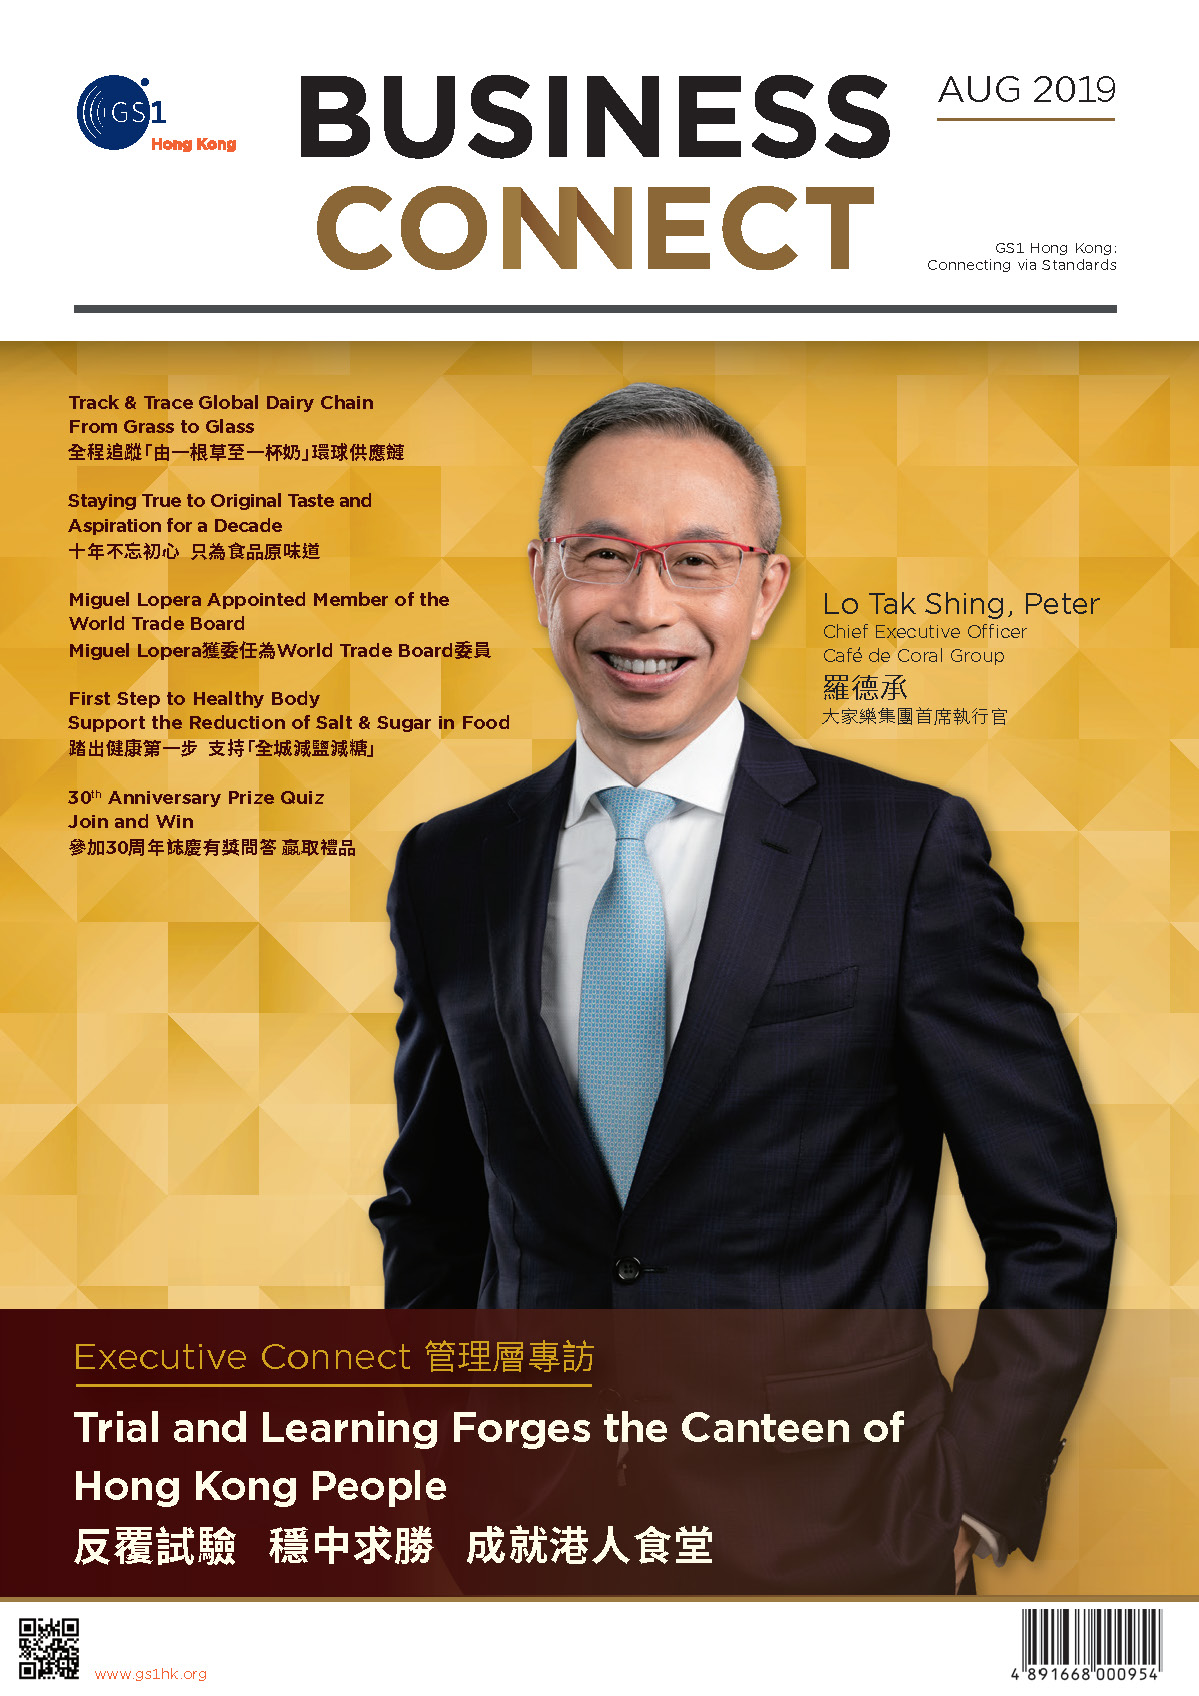 Business Connect Aug 2019